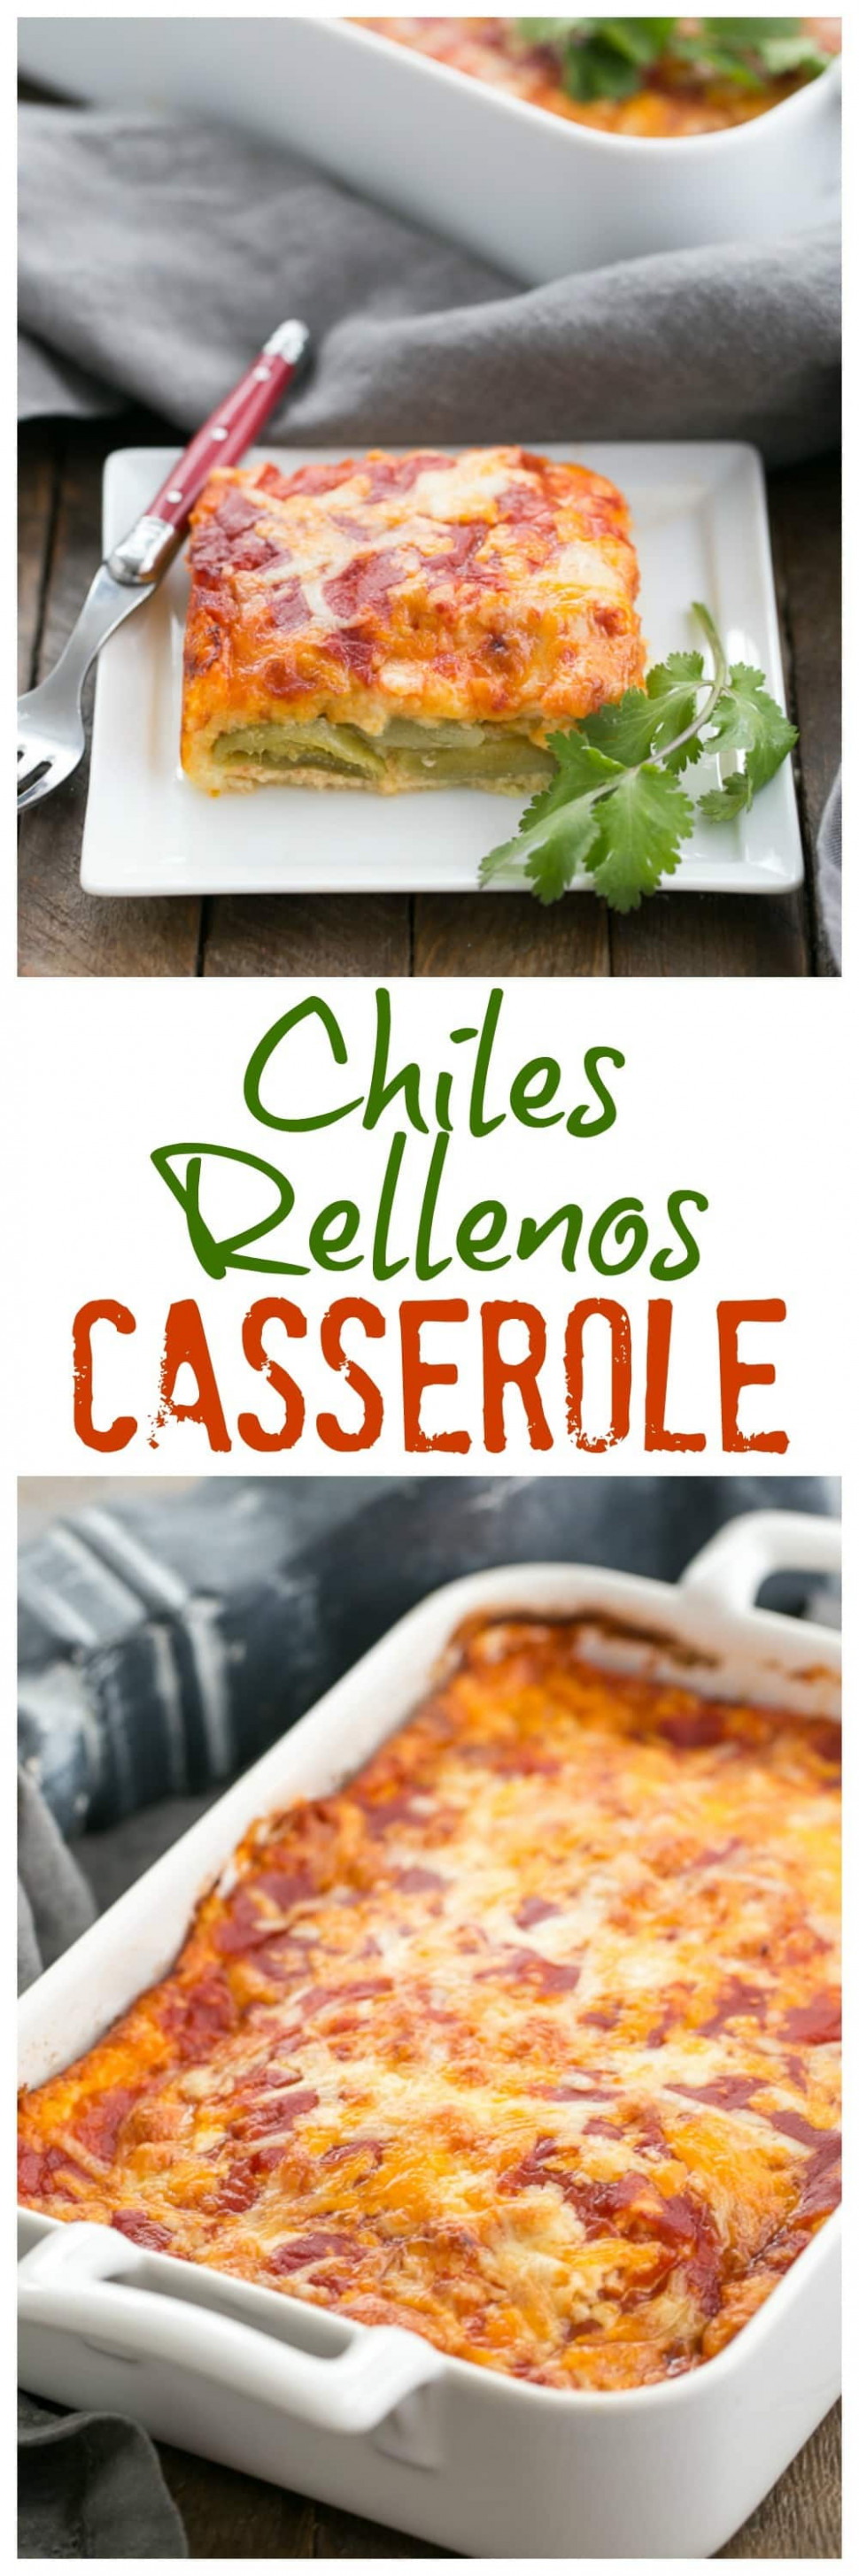 Easy Chiles Rellenos Casserole - That Skinny Chick Can Bake